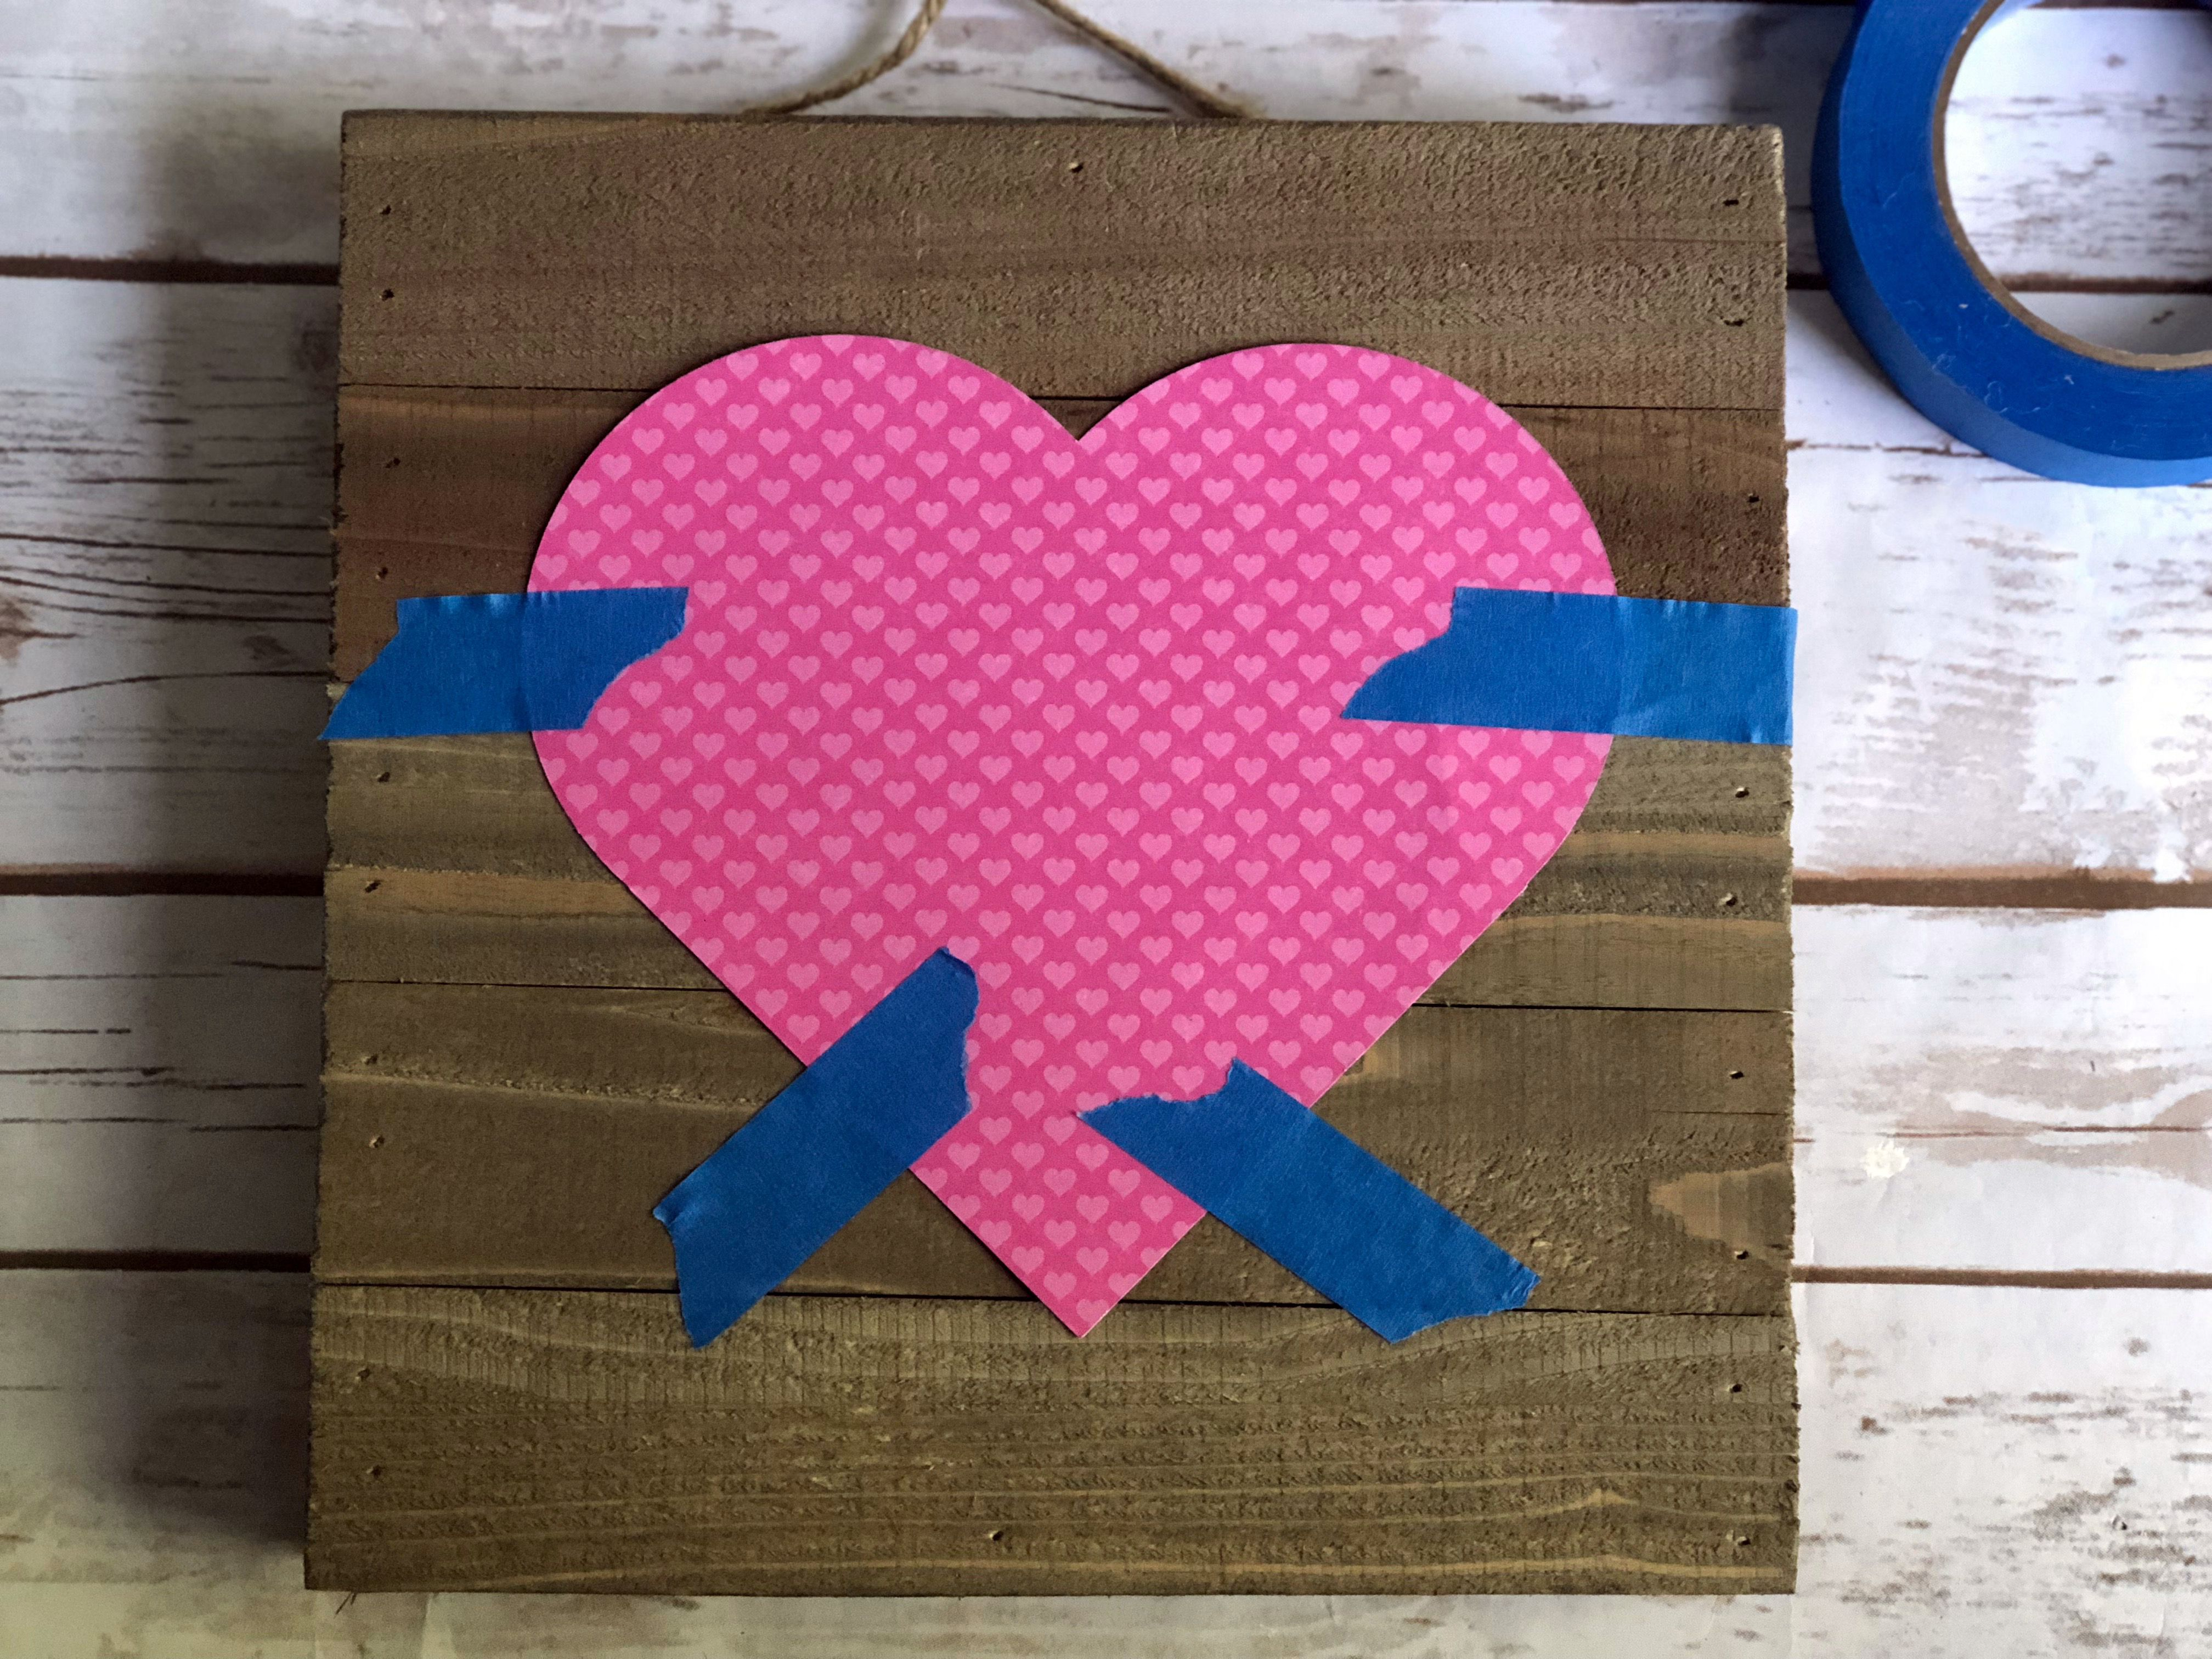 heart taped to board